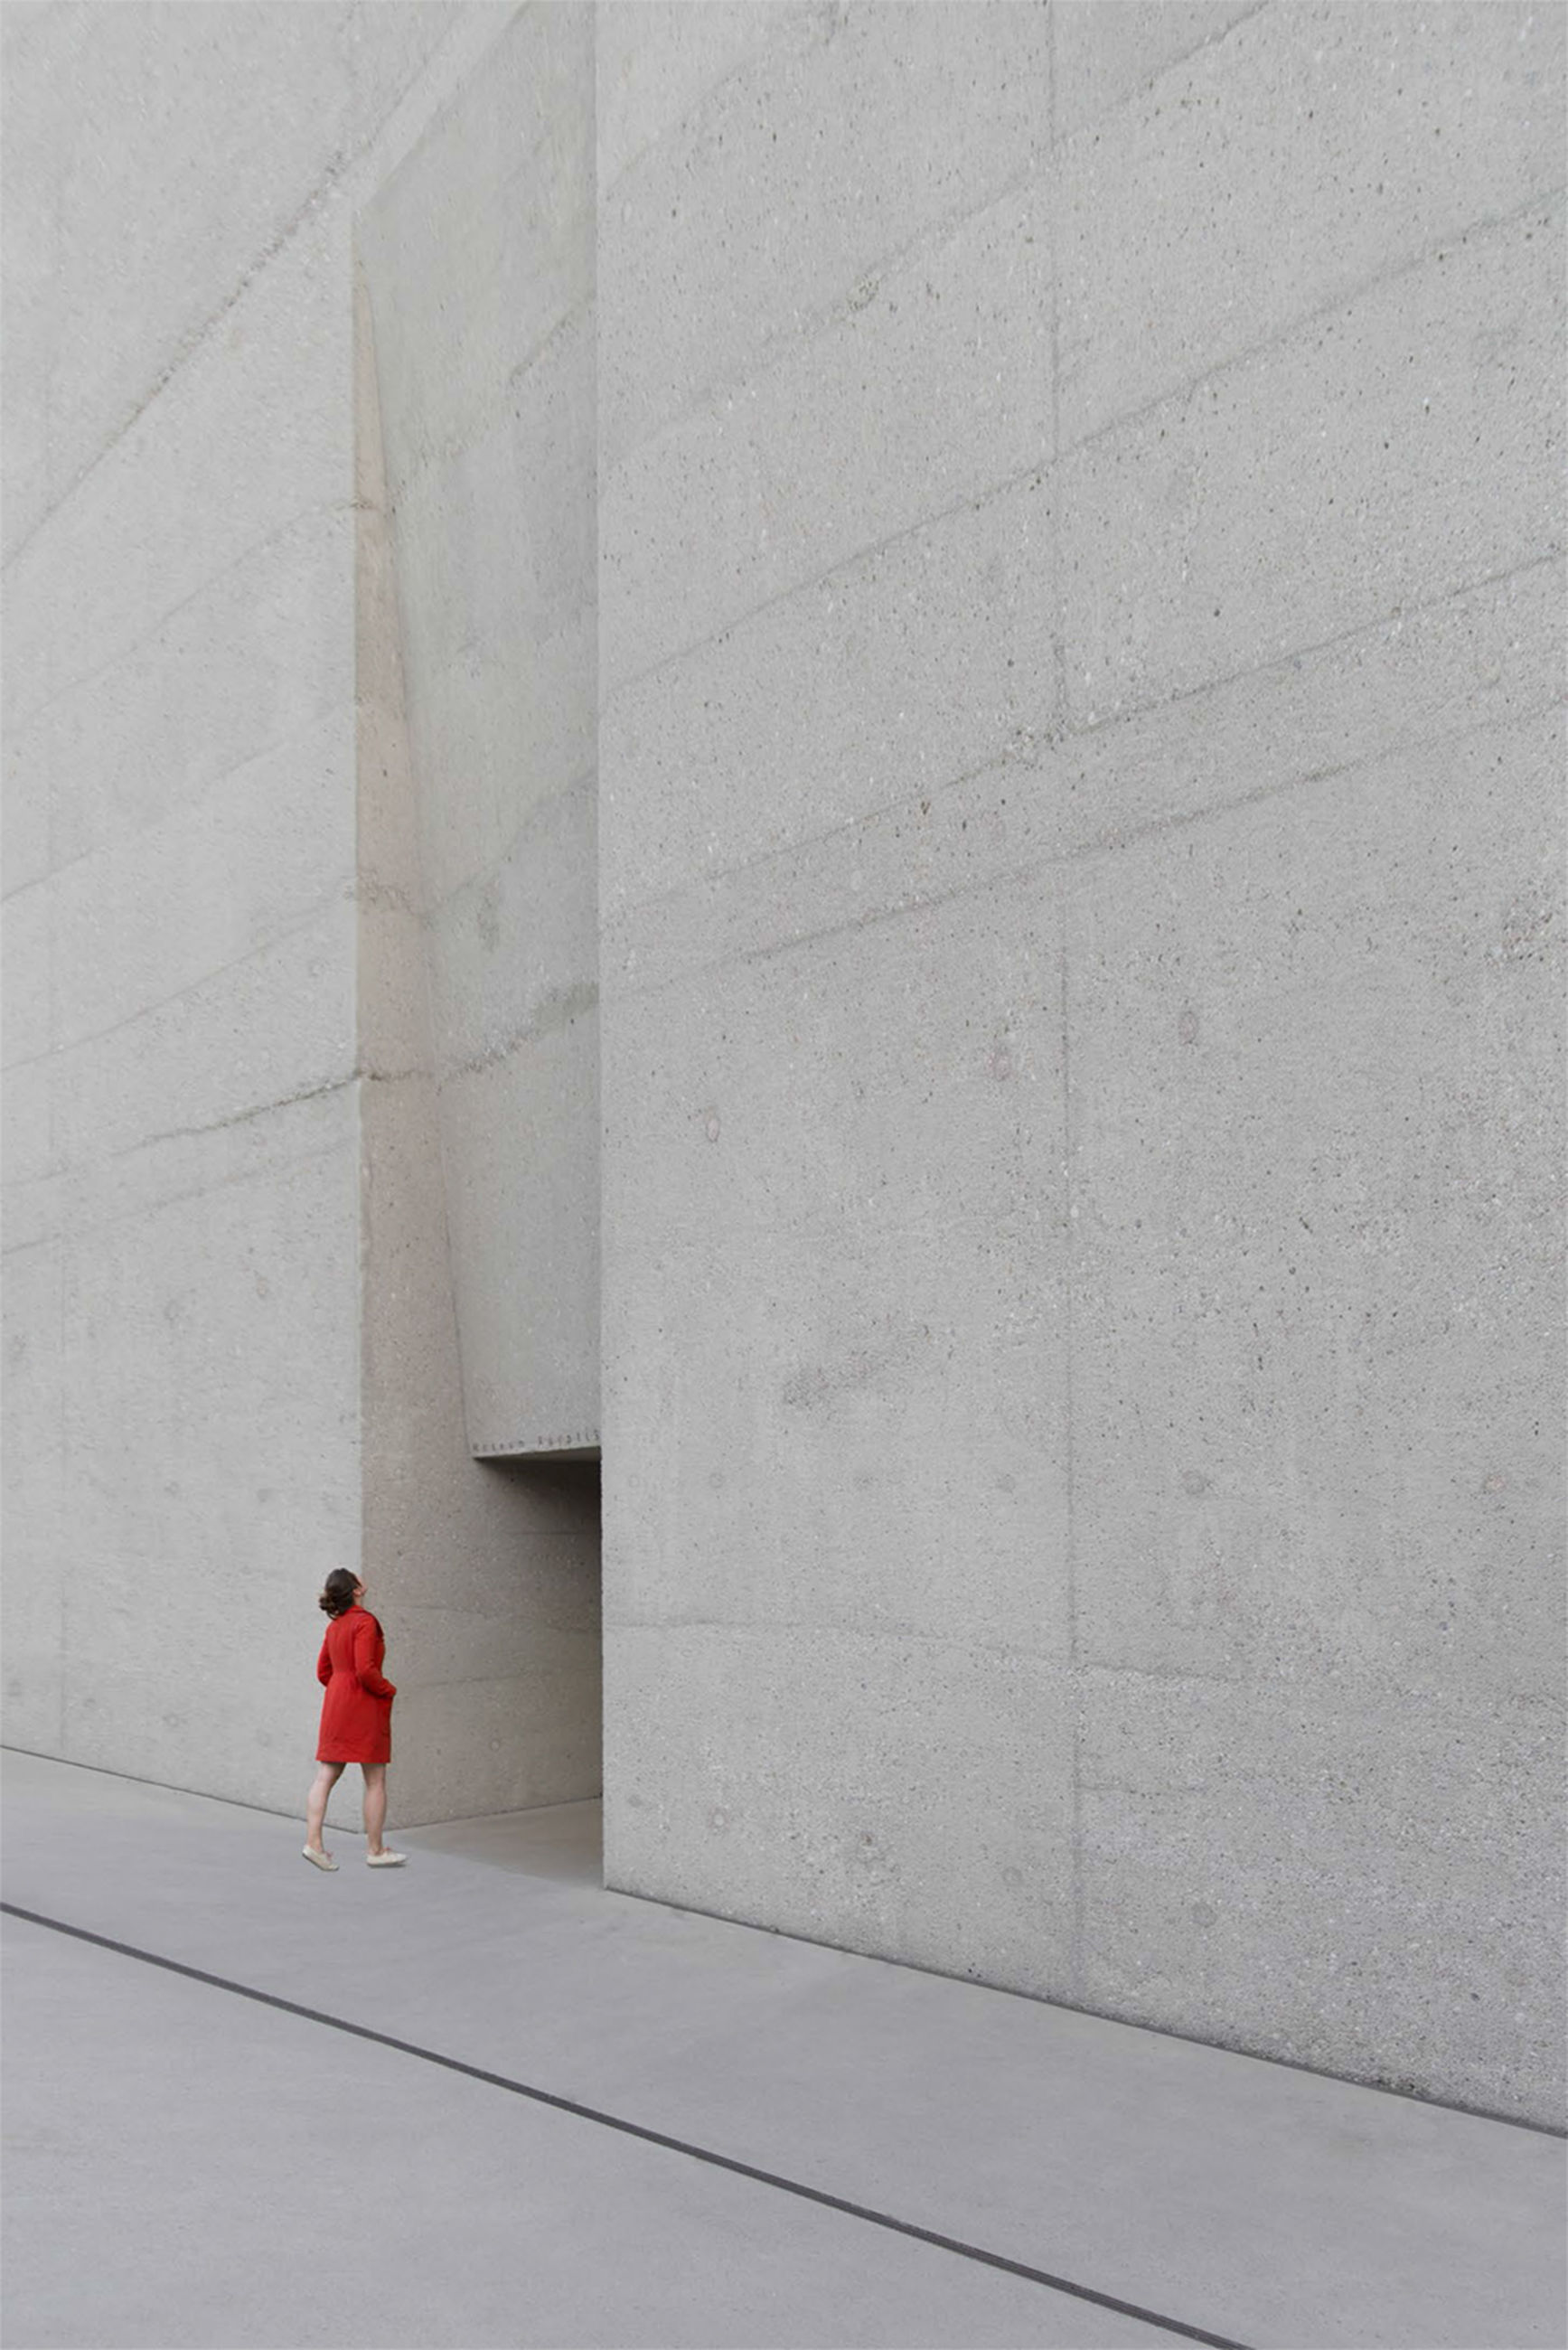 architecture, built structure, building exterior, red, wall - building feature, walking, lifestyles, full length, wall, standing, men, leisure activity, day, street, person, outdoors, rear view, casual clothing